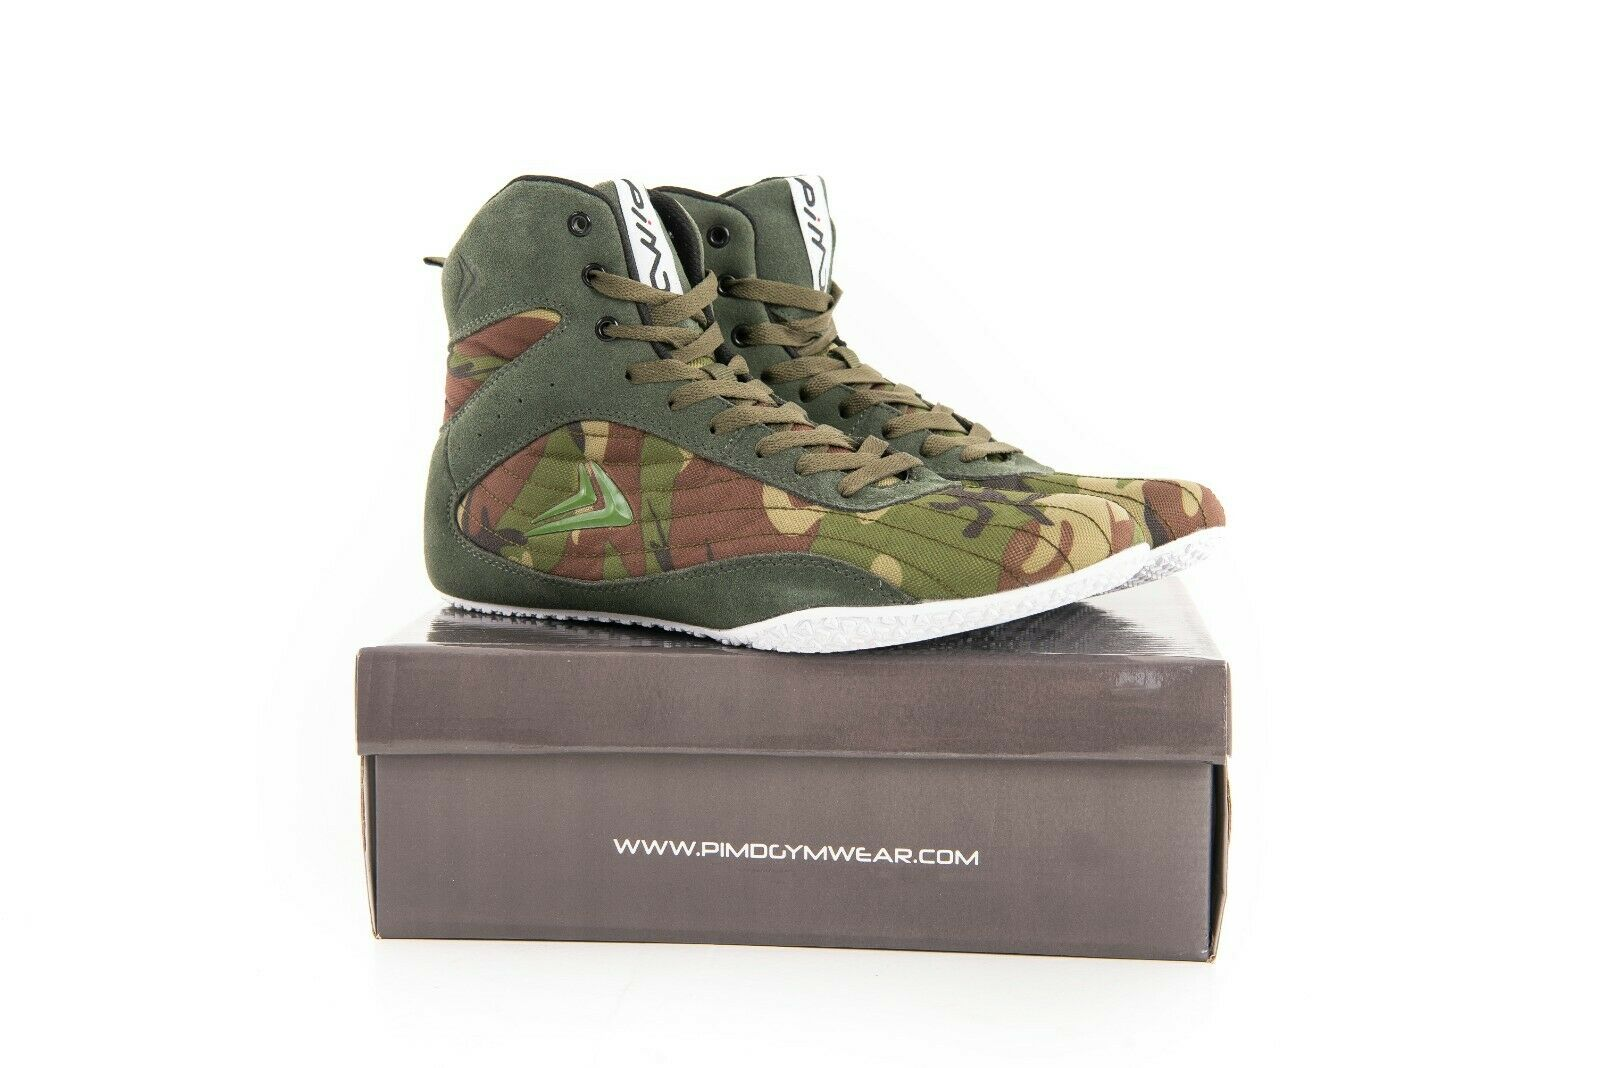 PIMD  Camo X-Core V2 Weight Lifting Workout Gym Boots for squatting dead lifting  online sales